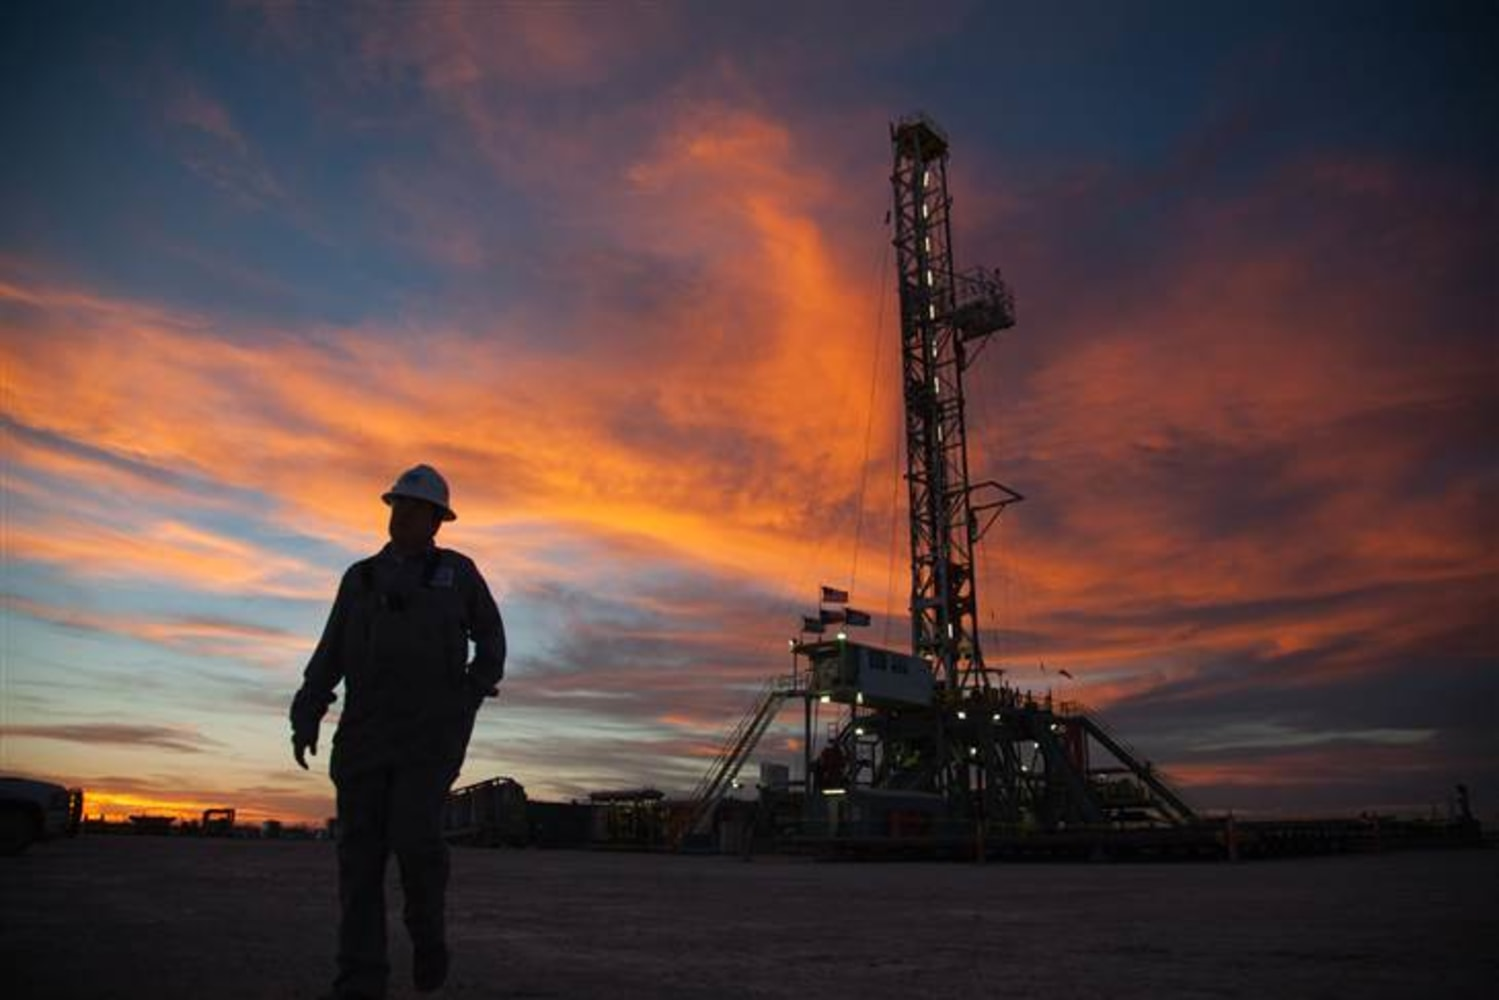 Gas injection in oil fields triggered Texas earthquakes